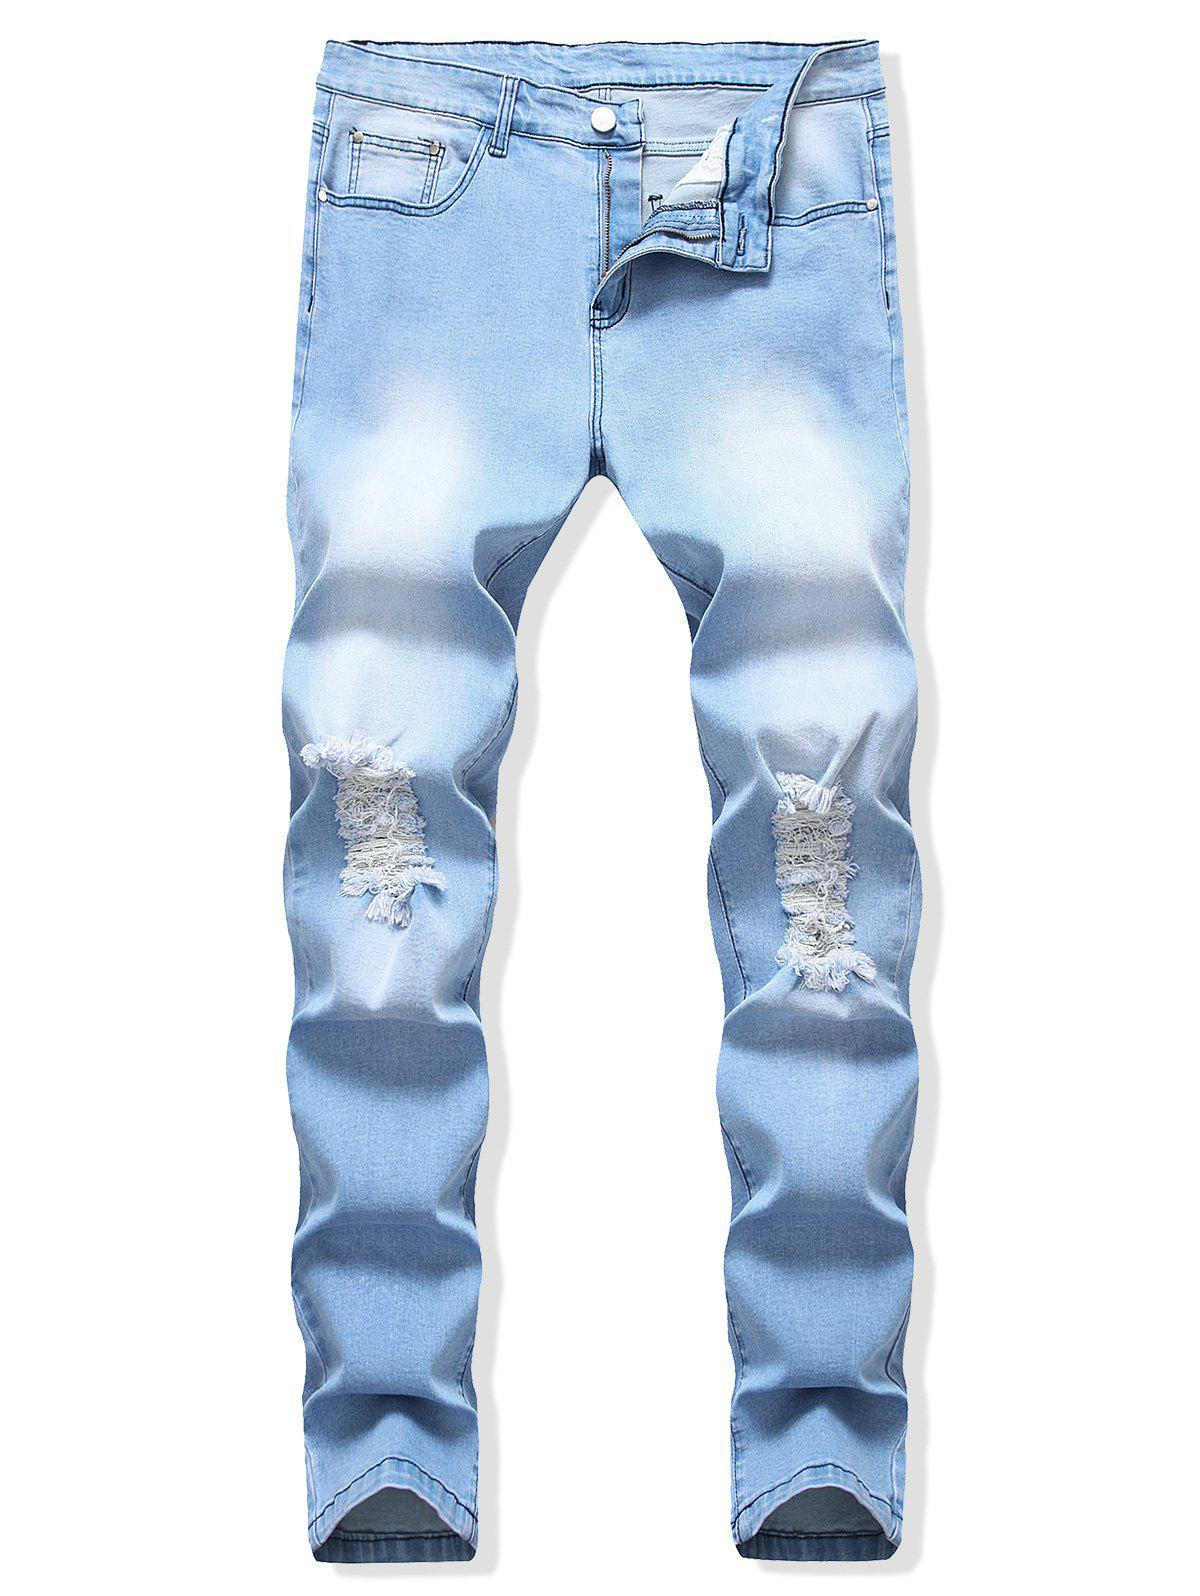 New Destroyed Design Light Wash Casual Jeans